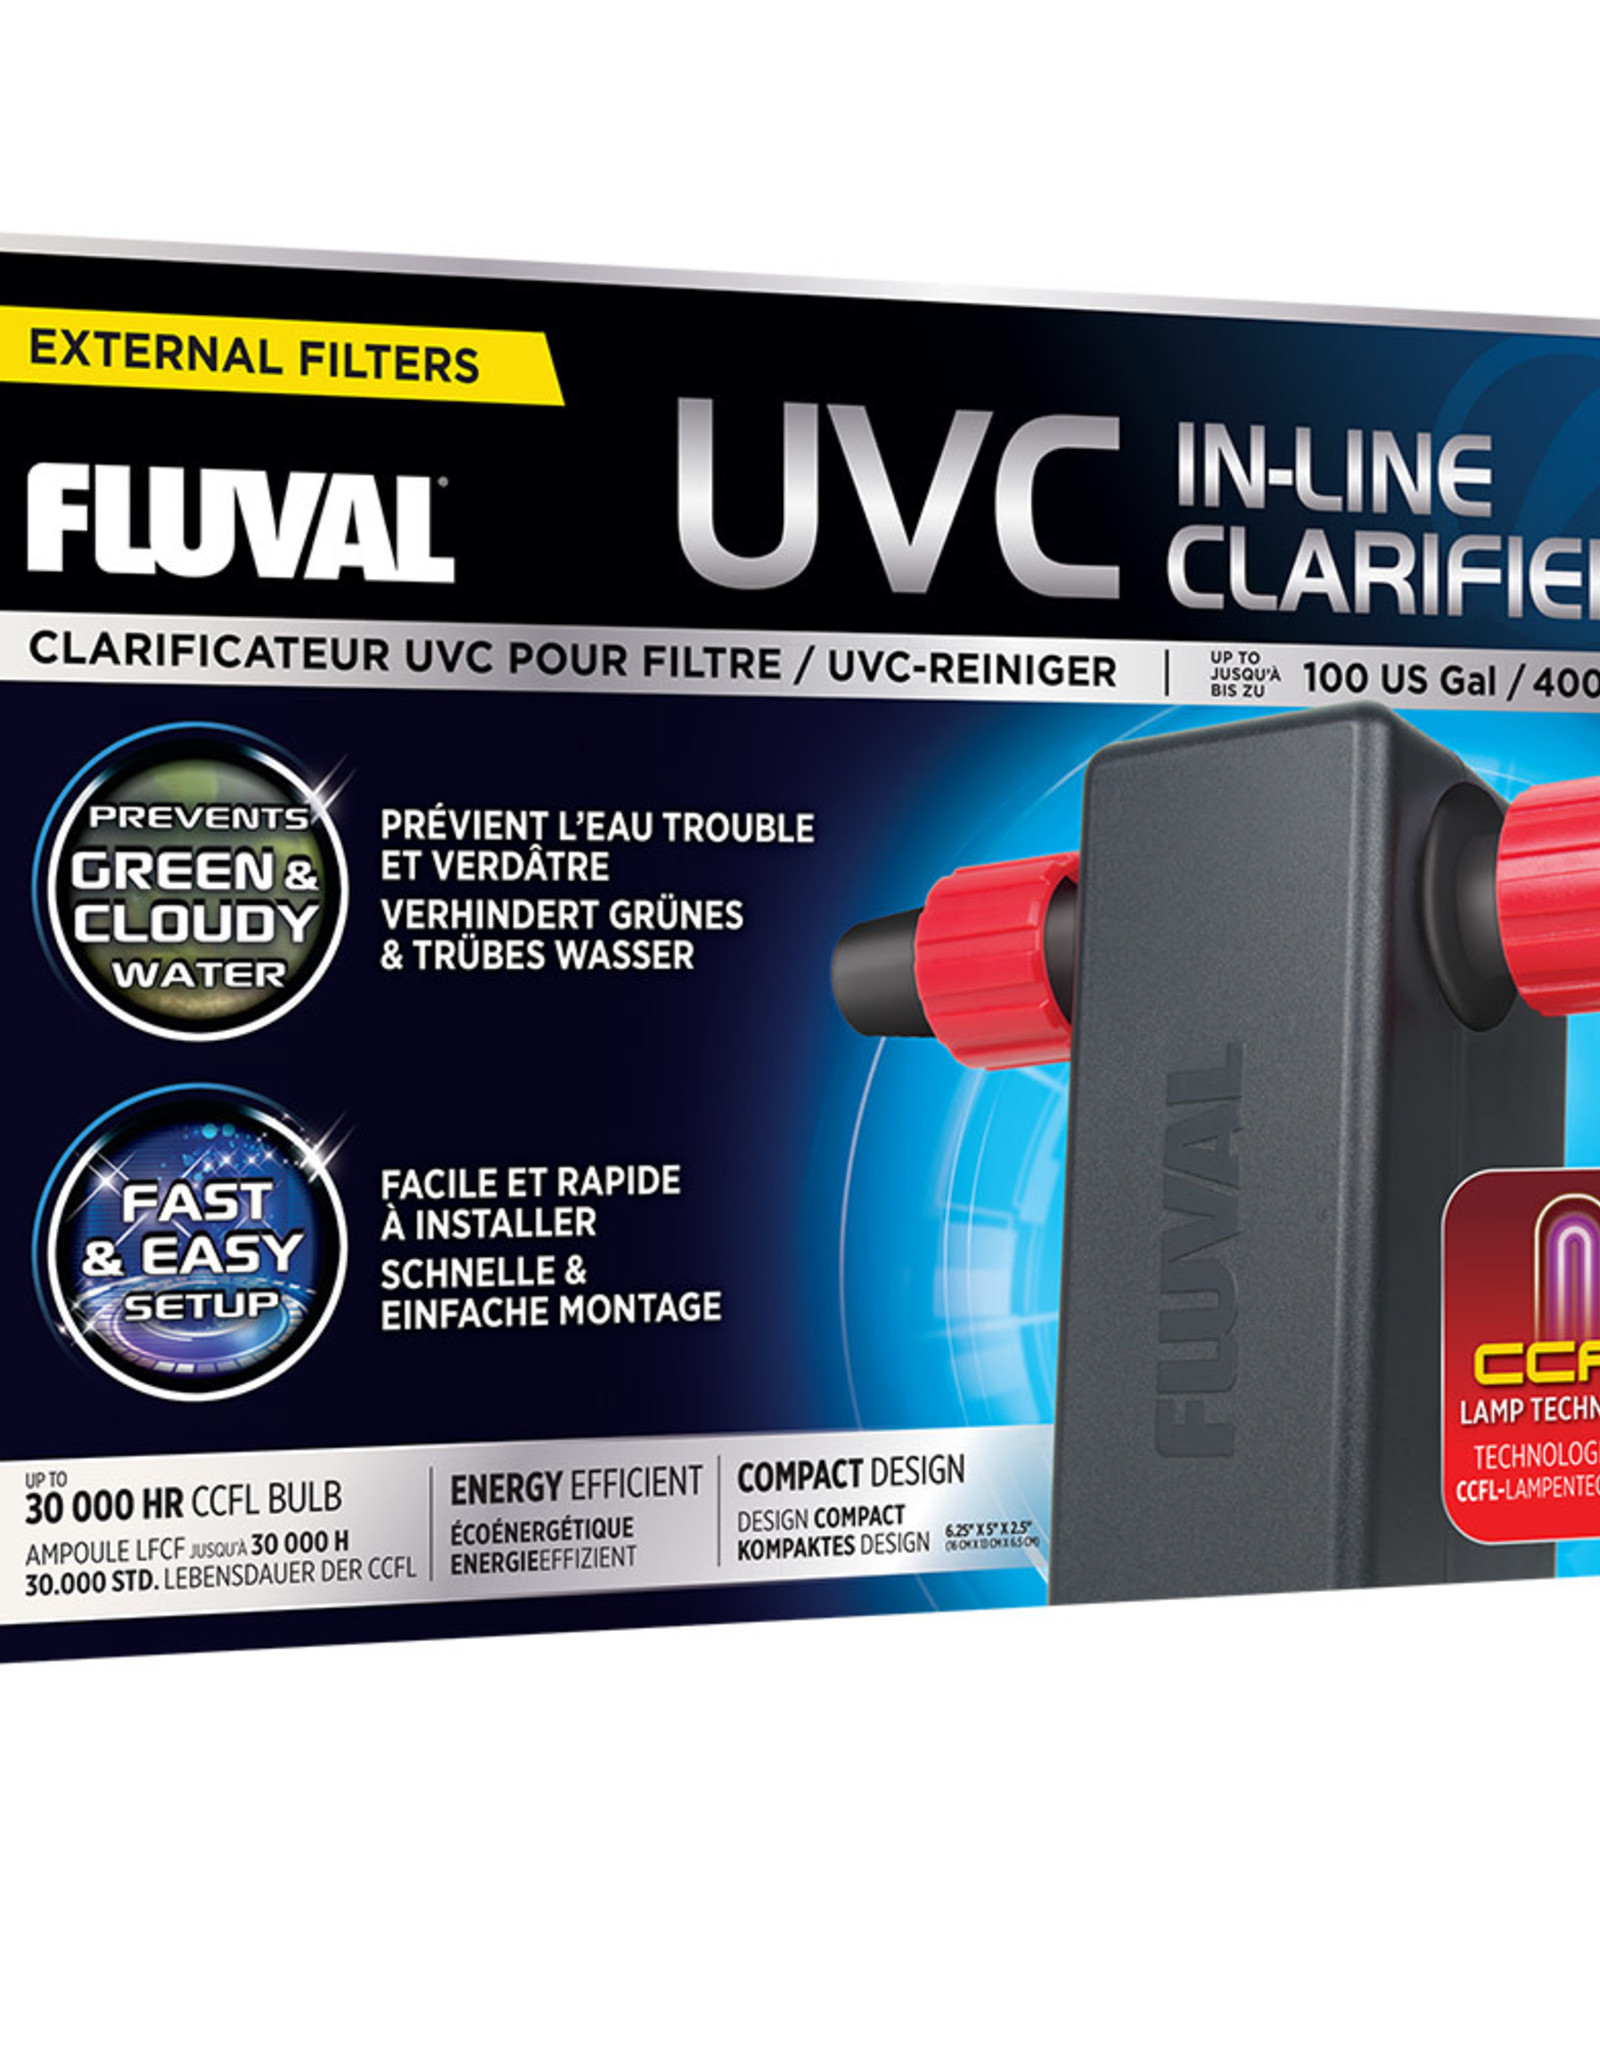 Fluval Sea Fluval UVC In-Line Clarifier - up to 100 US Gal (400 L)